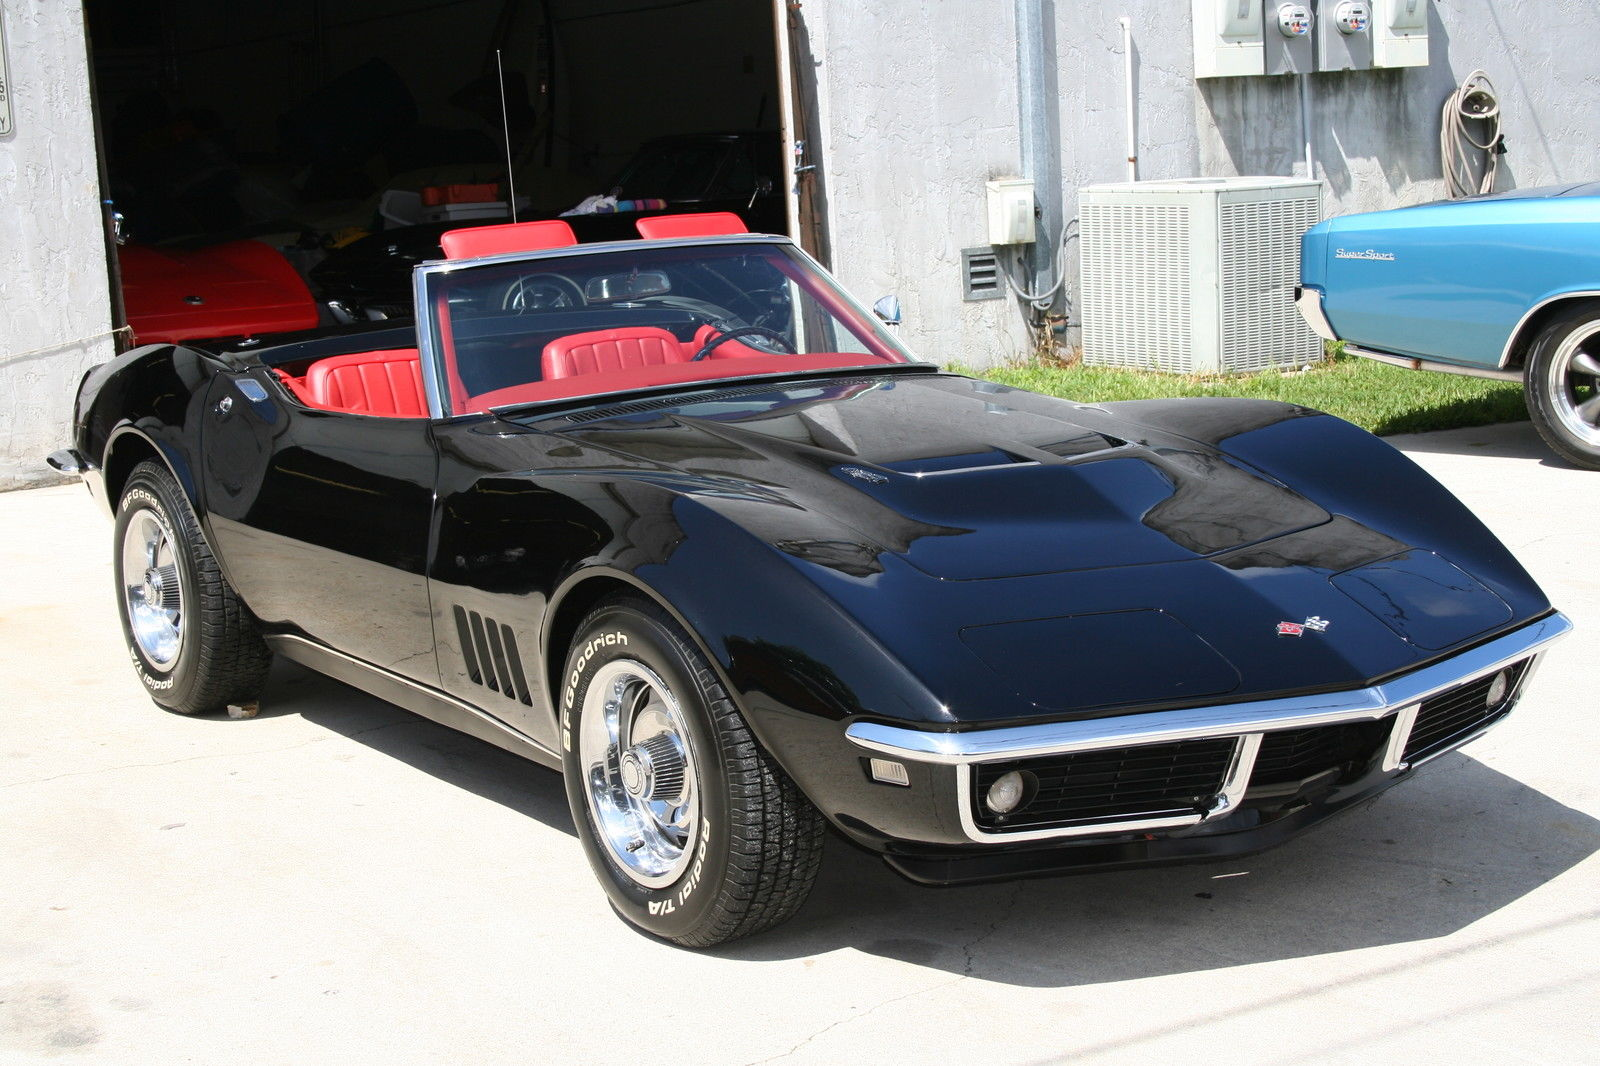 1968 To 1972 Corvettes For Sale >> 1968 Corvette Convertible 427/435HP Tri-Power Number ...